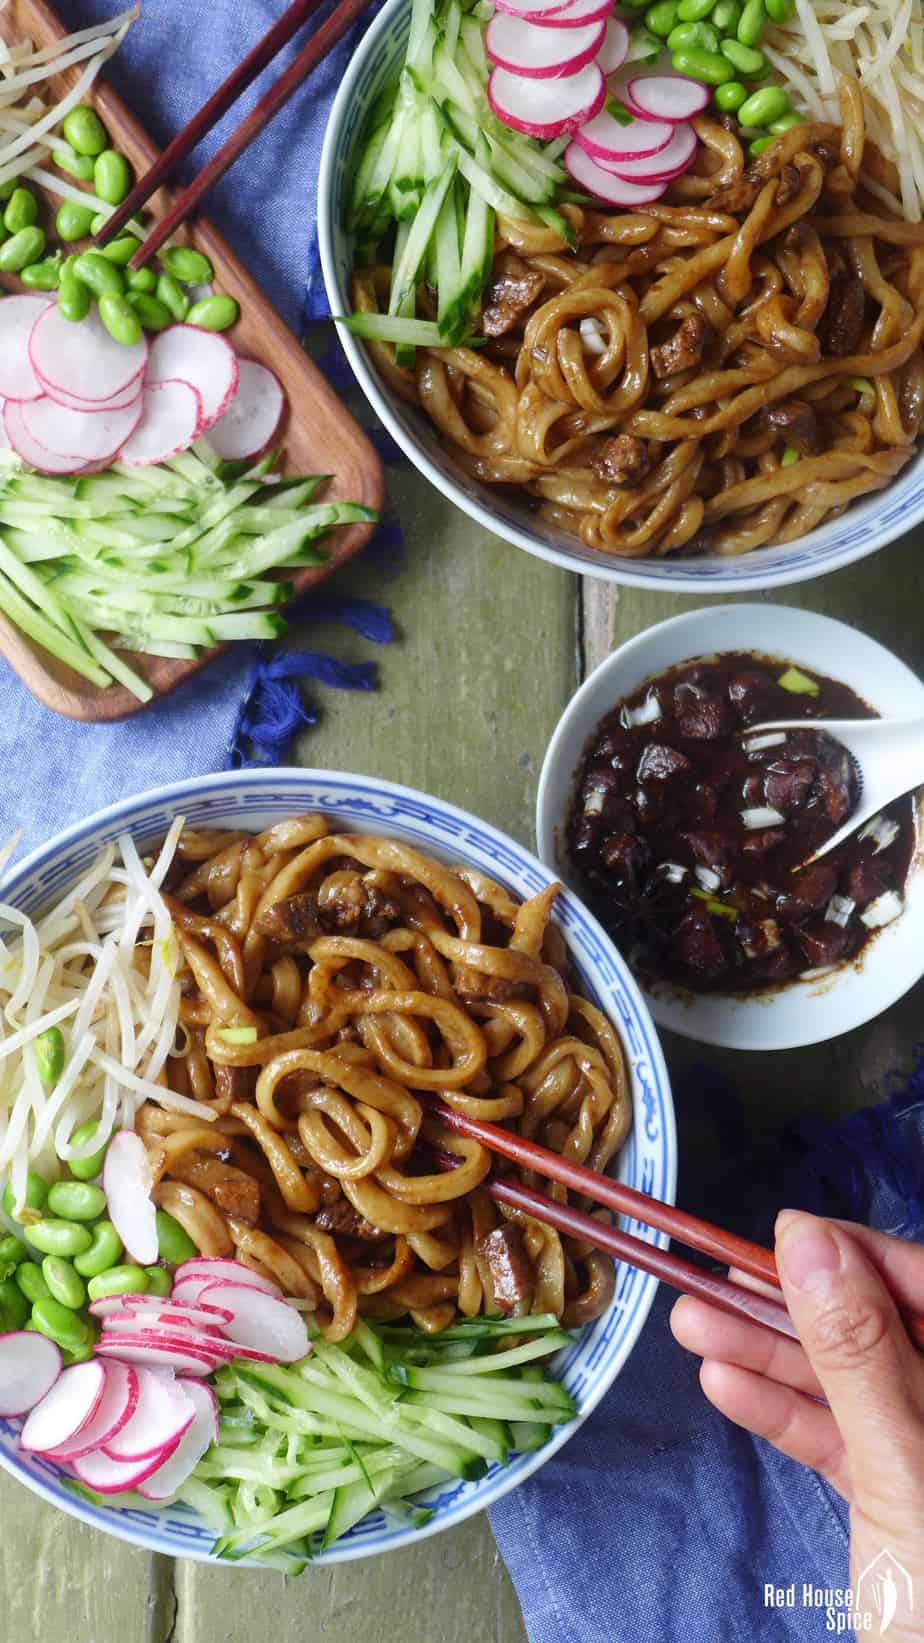 Pork cubes cooked in a salty, fragrant sauce, then served with noodles and various vegetables, Zha Jiang Mian is a signature Beijing dish full of flavour and freshness.